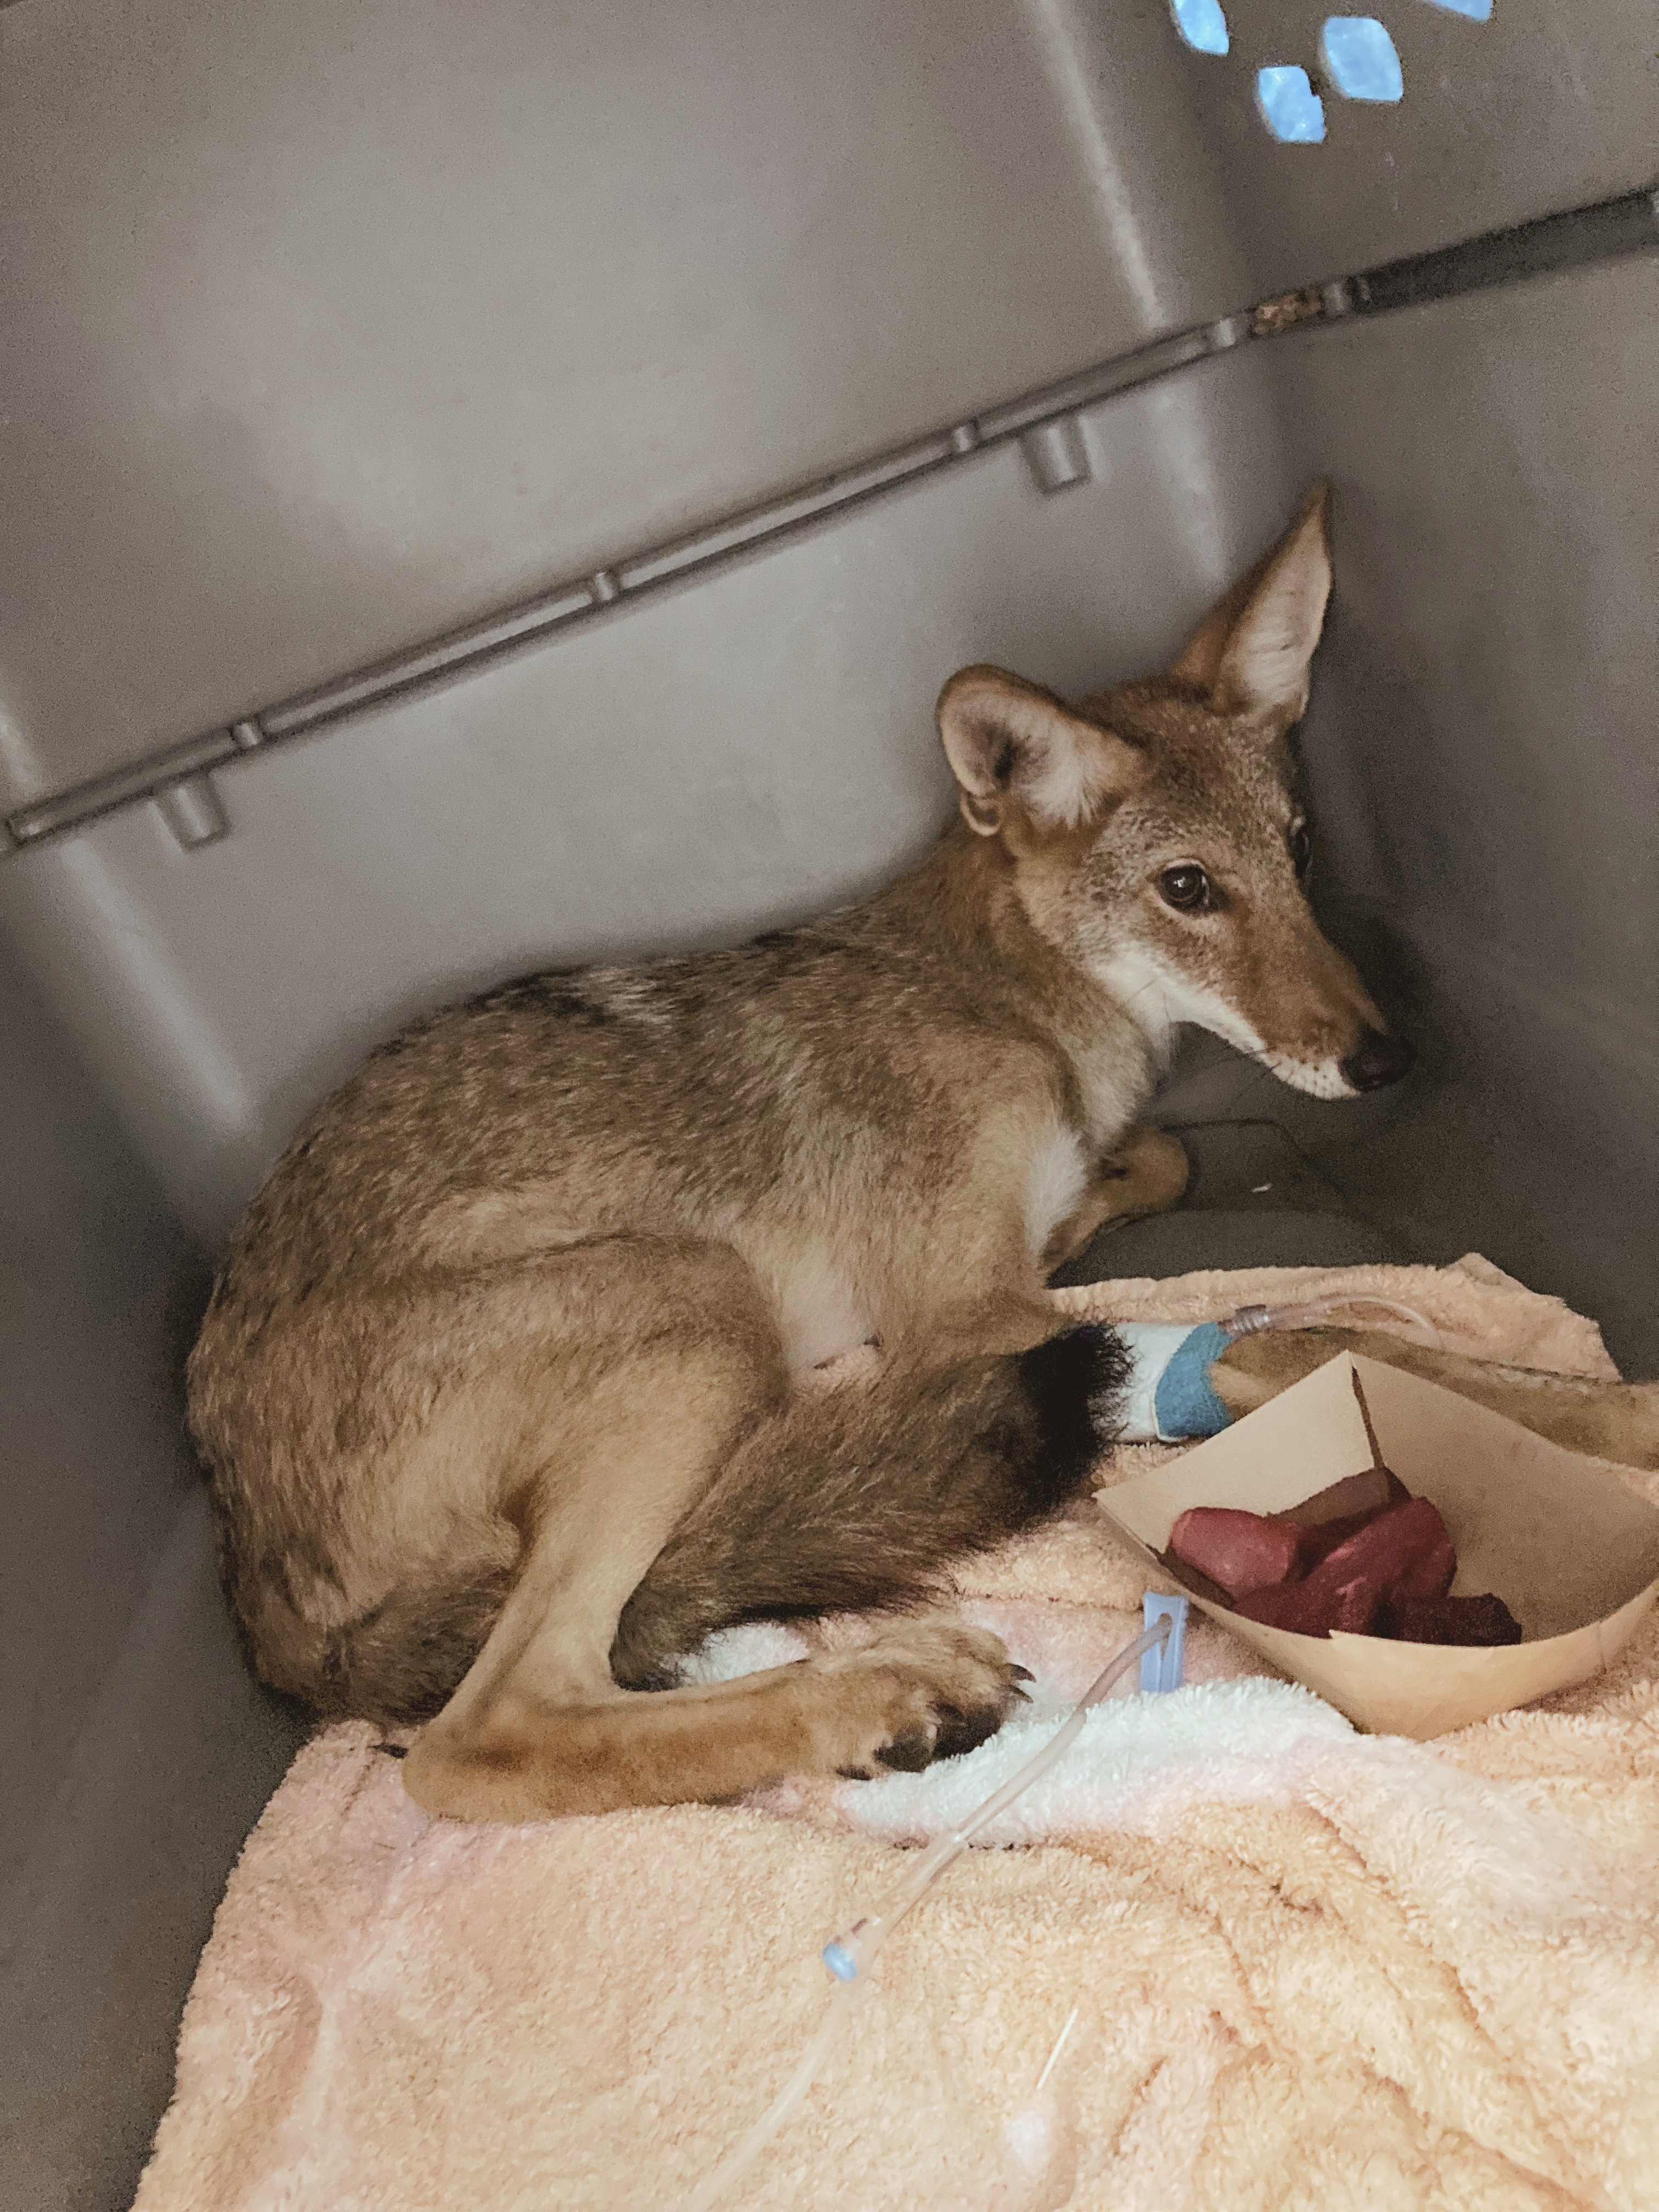 Rescue coyote curled up in her crate with a big plate of yummy food just after her medical exam. She looks scared, but she is in good hands.